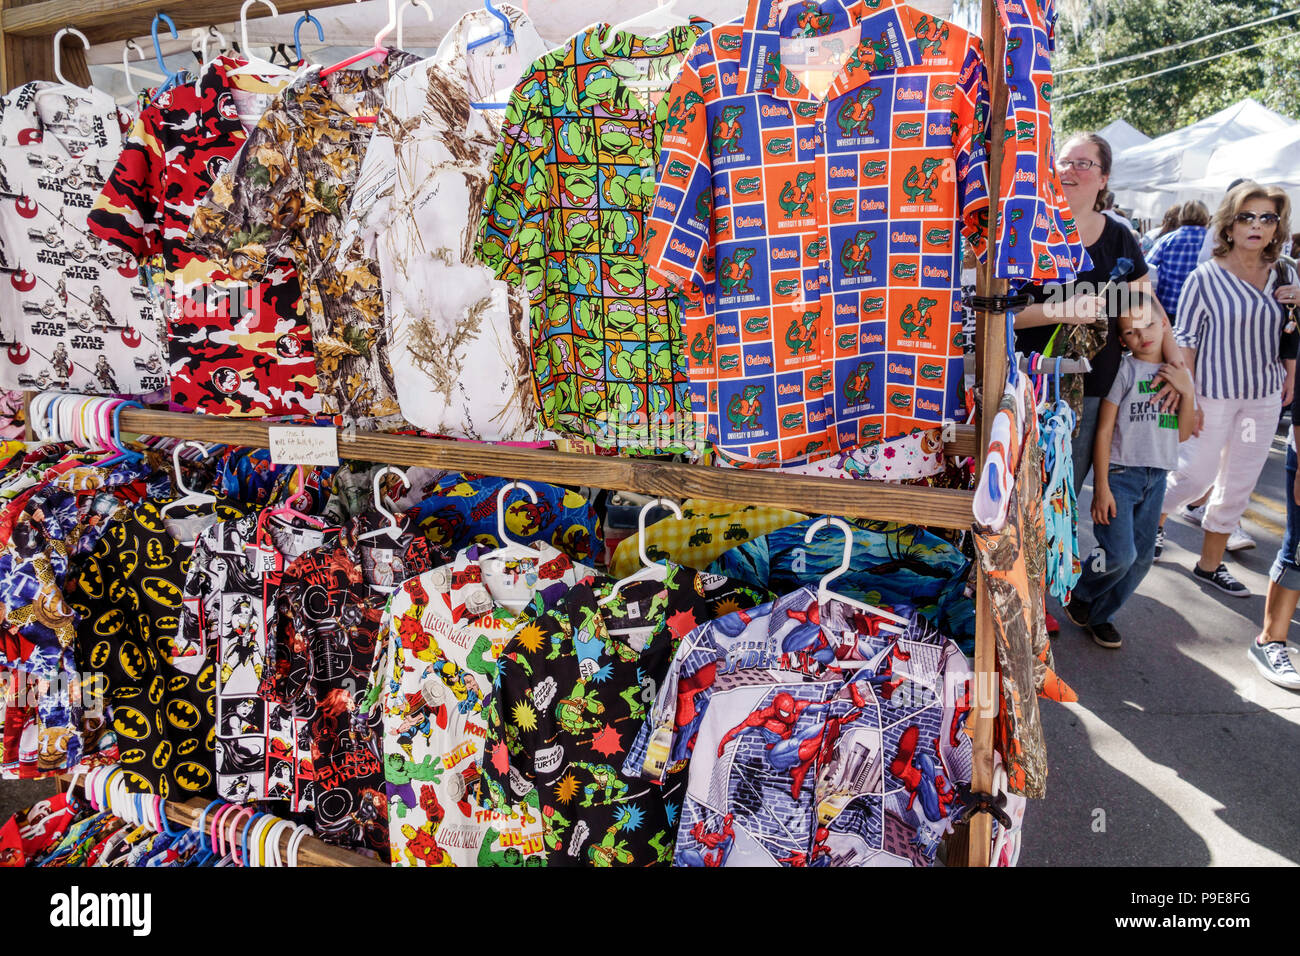 Florida Micanopy Fall Harvest Festival annual small town community event booths stalls vendors buying selling display sale men's theme shirts UF logo - Stock Image